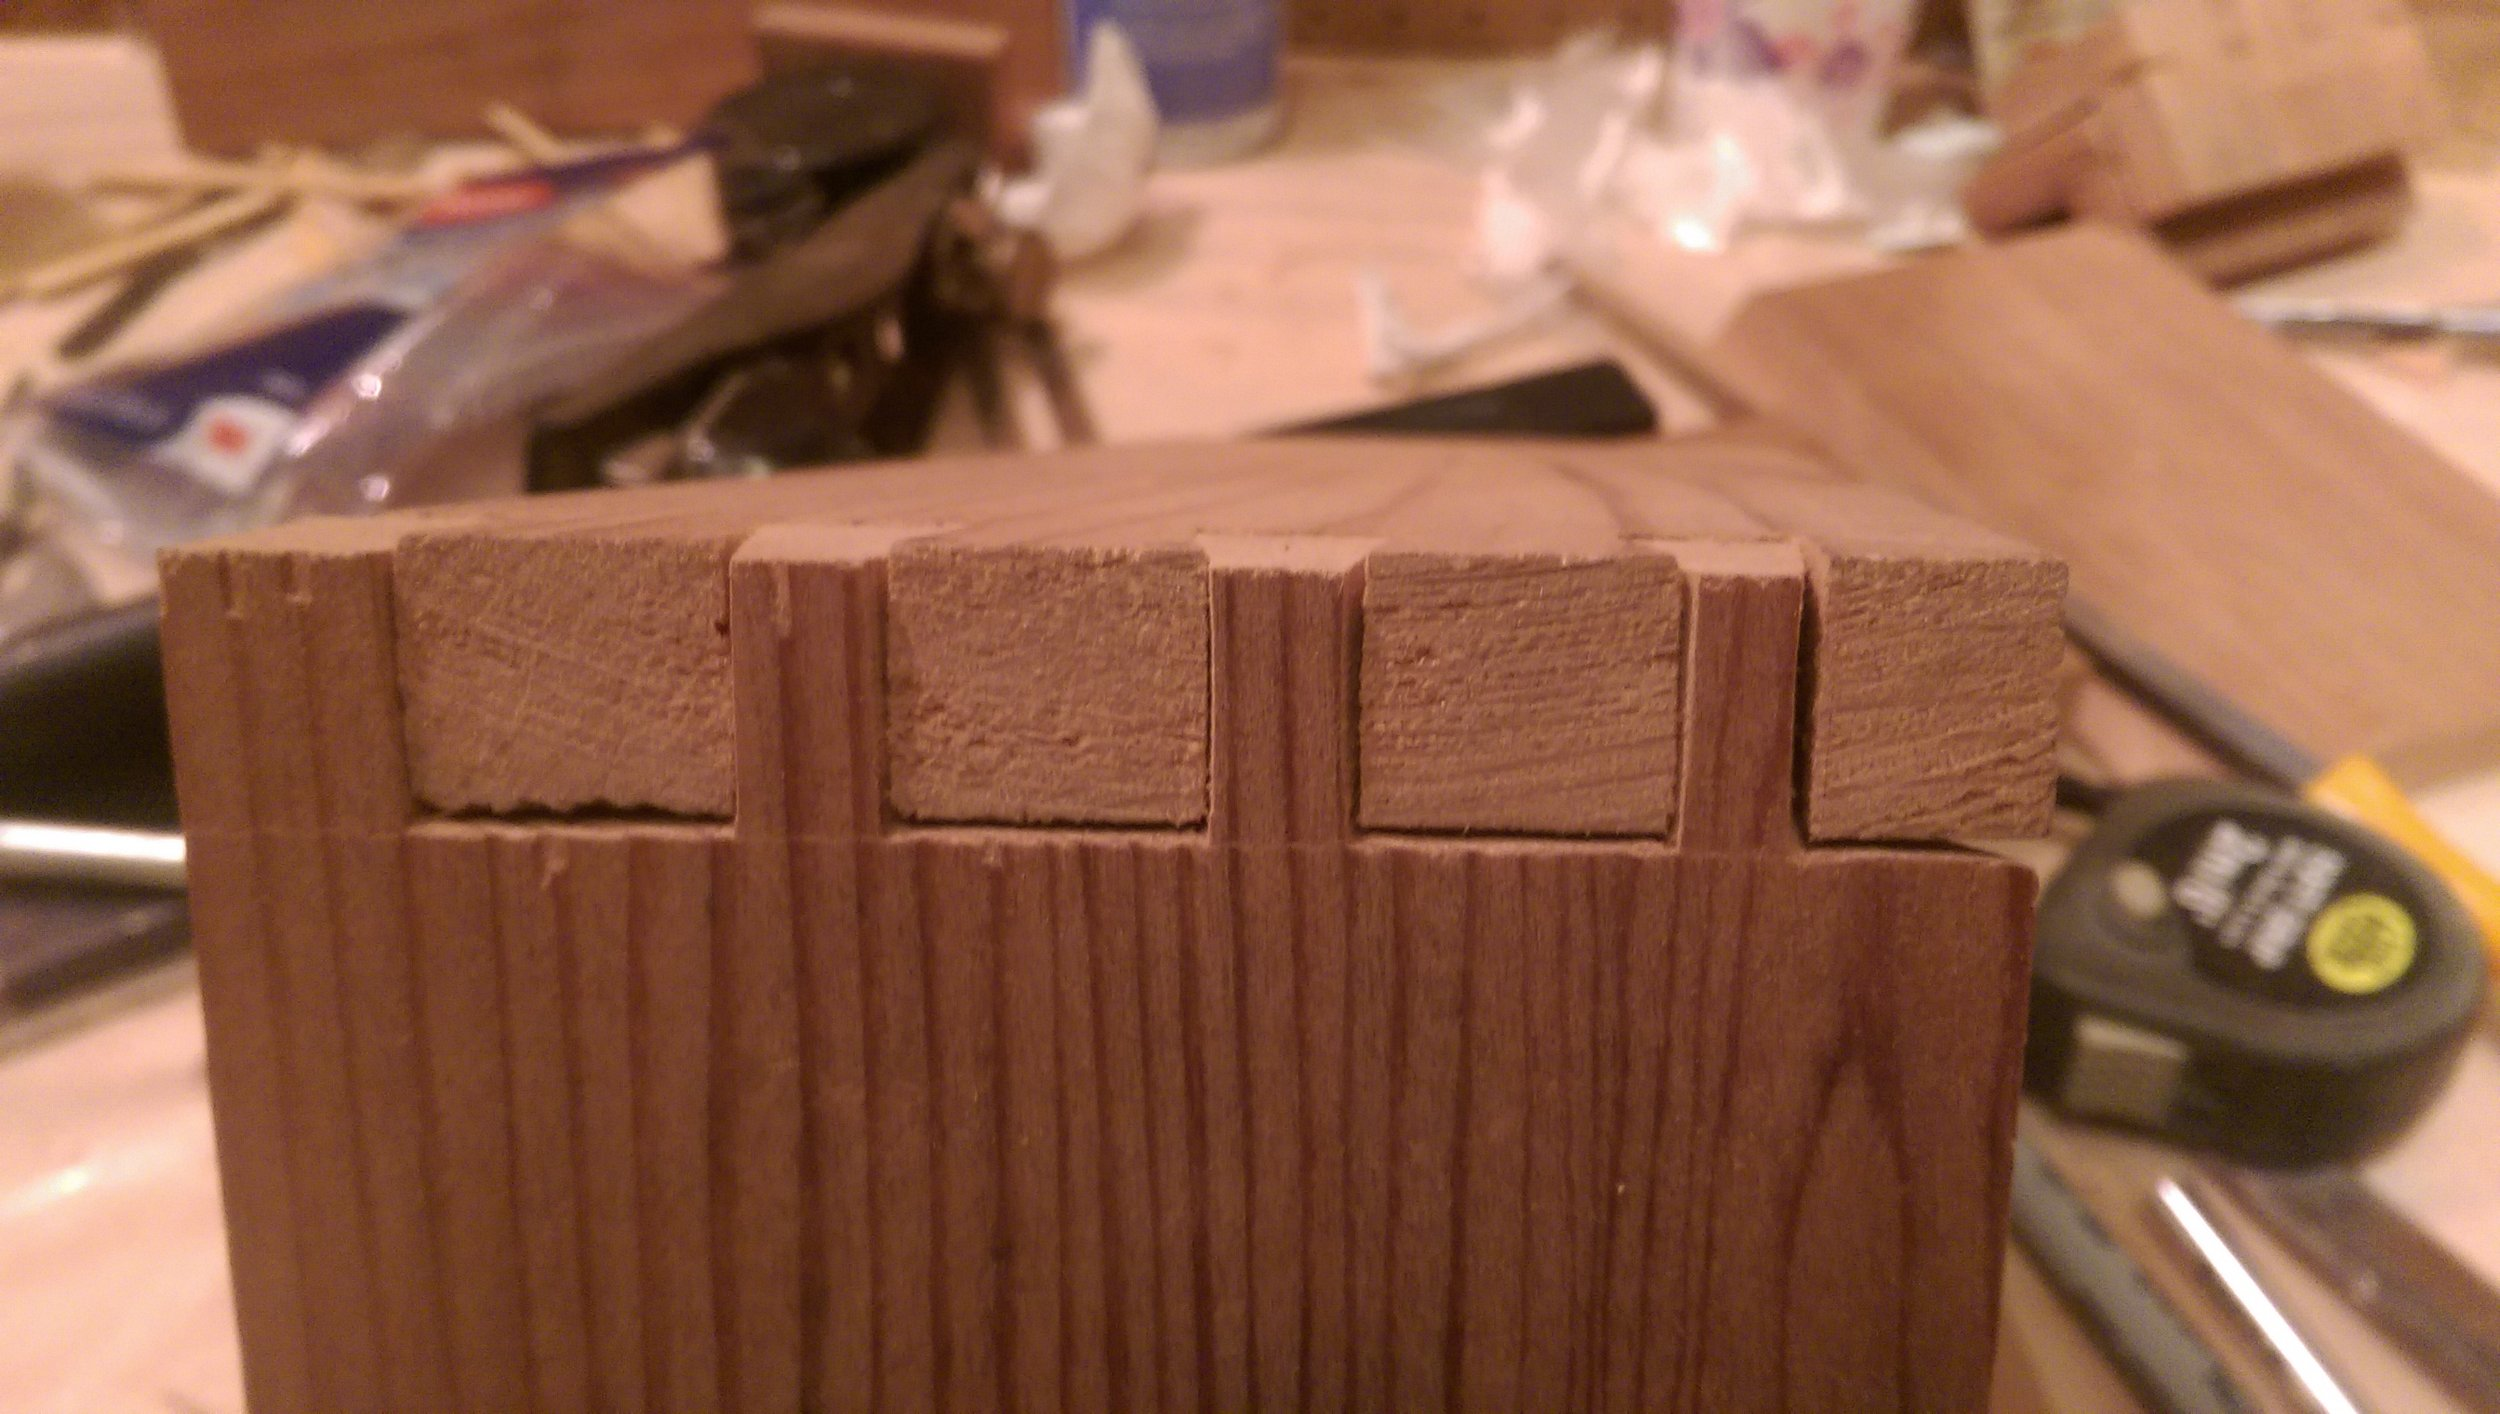 After a bit of massaging with a file, I managed to fit my first joint together. The test fit pretty clearly shows I'm an amateur at hand-cutting dovetail joints. The gaps are embarrassingly large. I was still excited when everything fit together though!